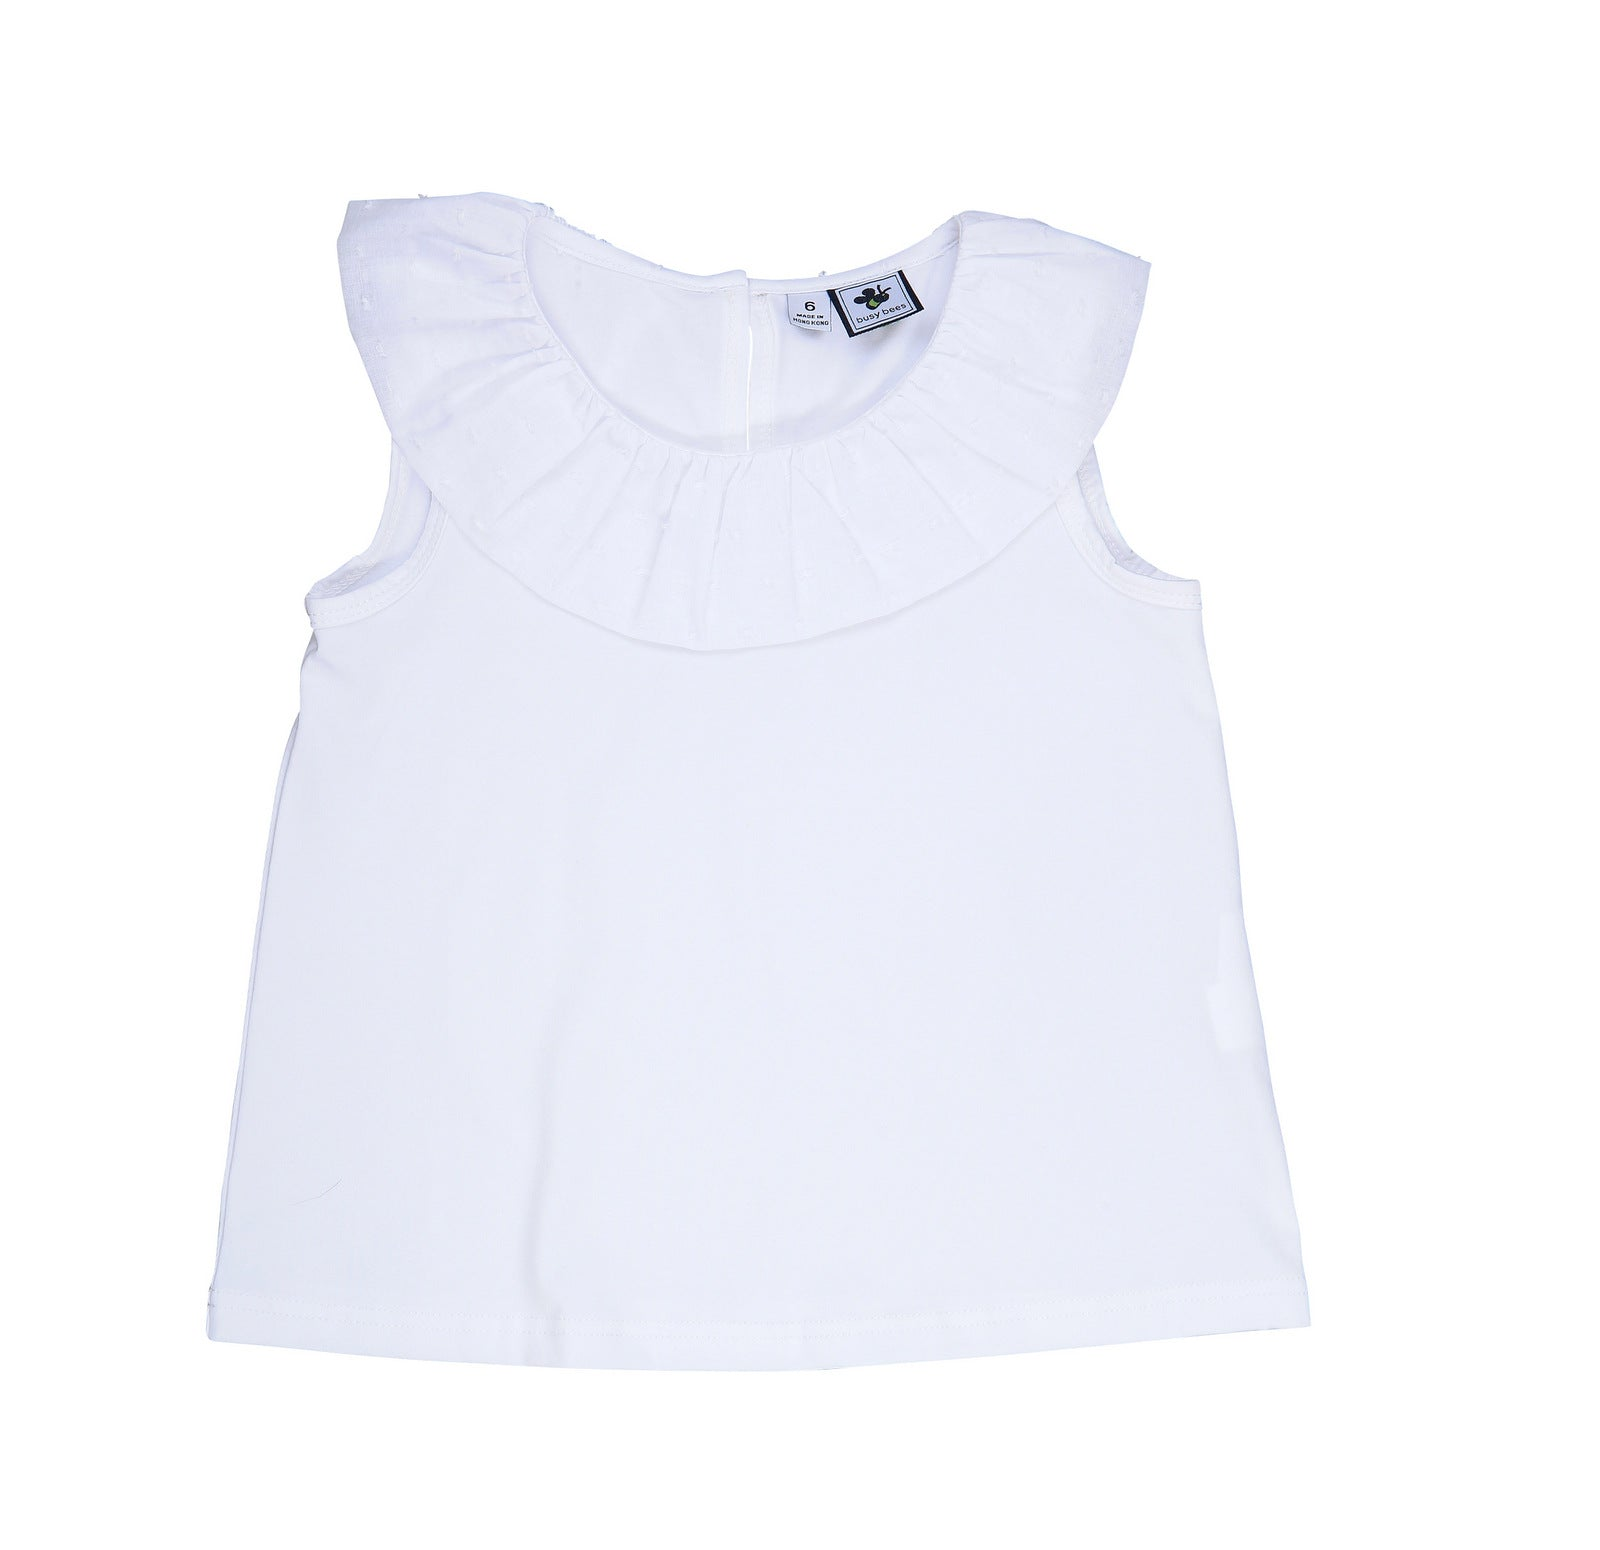 summer ruffle tee white knit with swiss dot